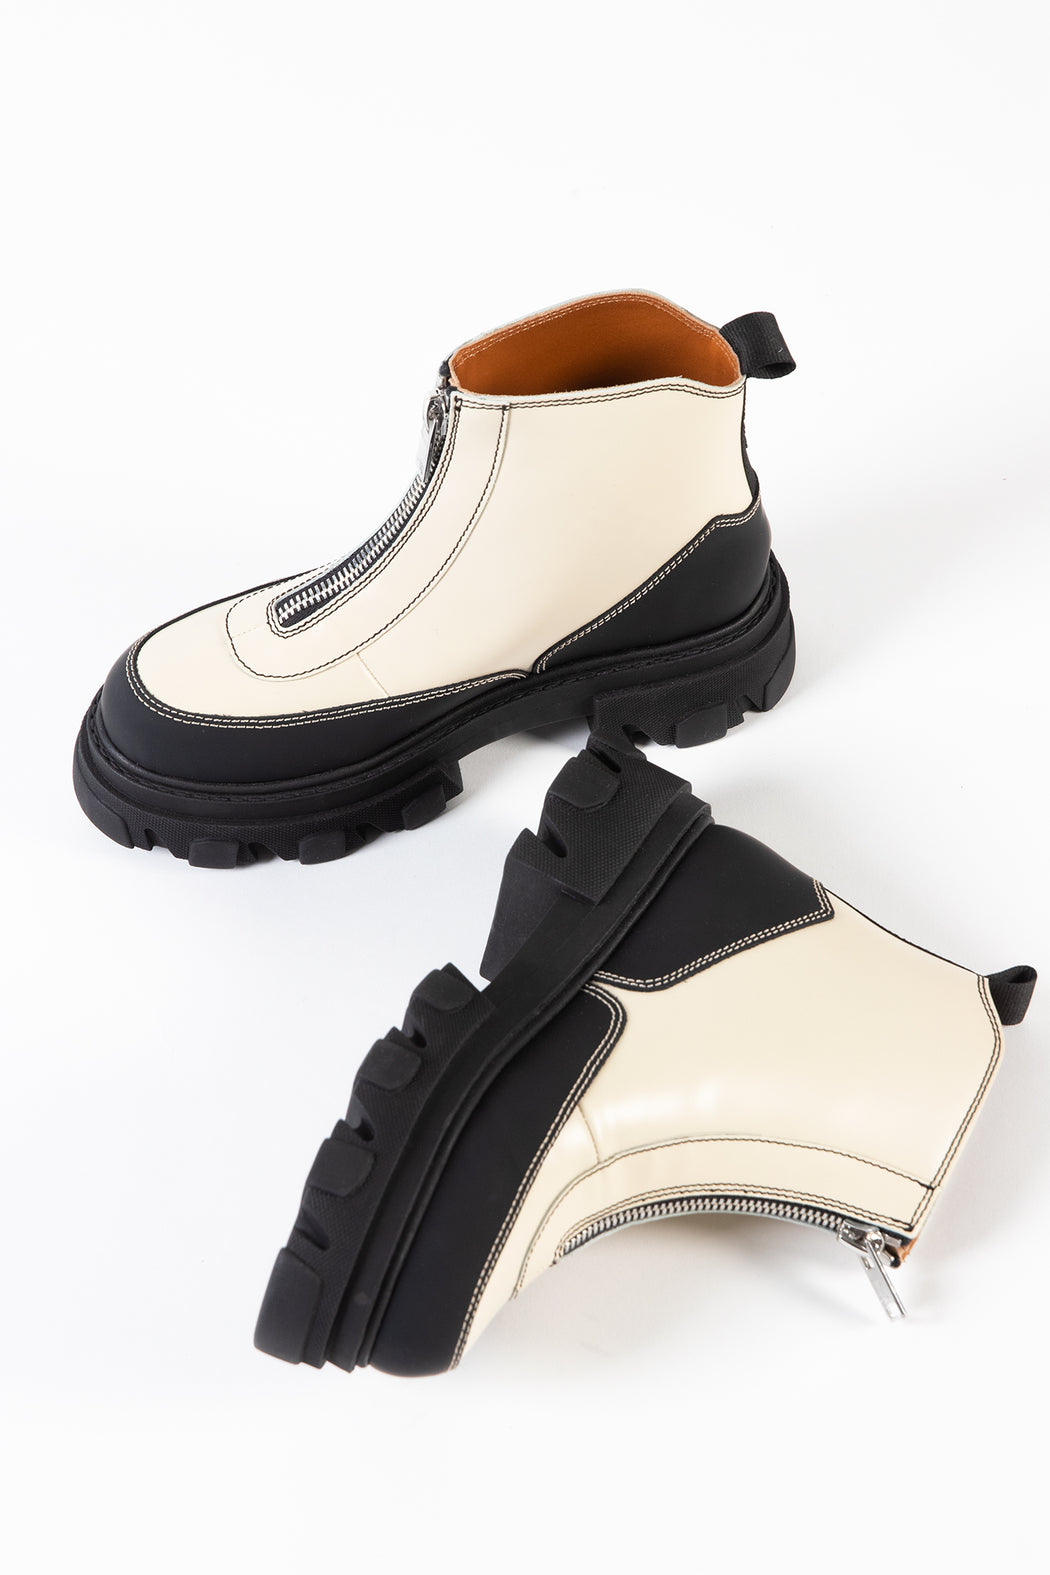 Ganni-Polido-Zipper-Boot-Egret